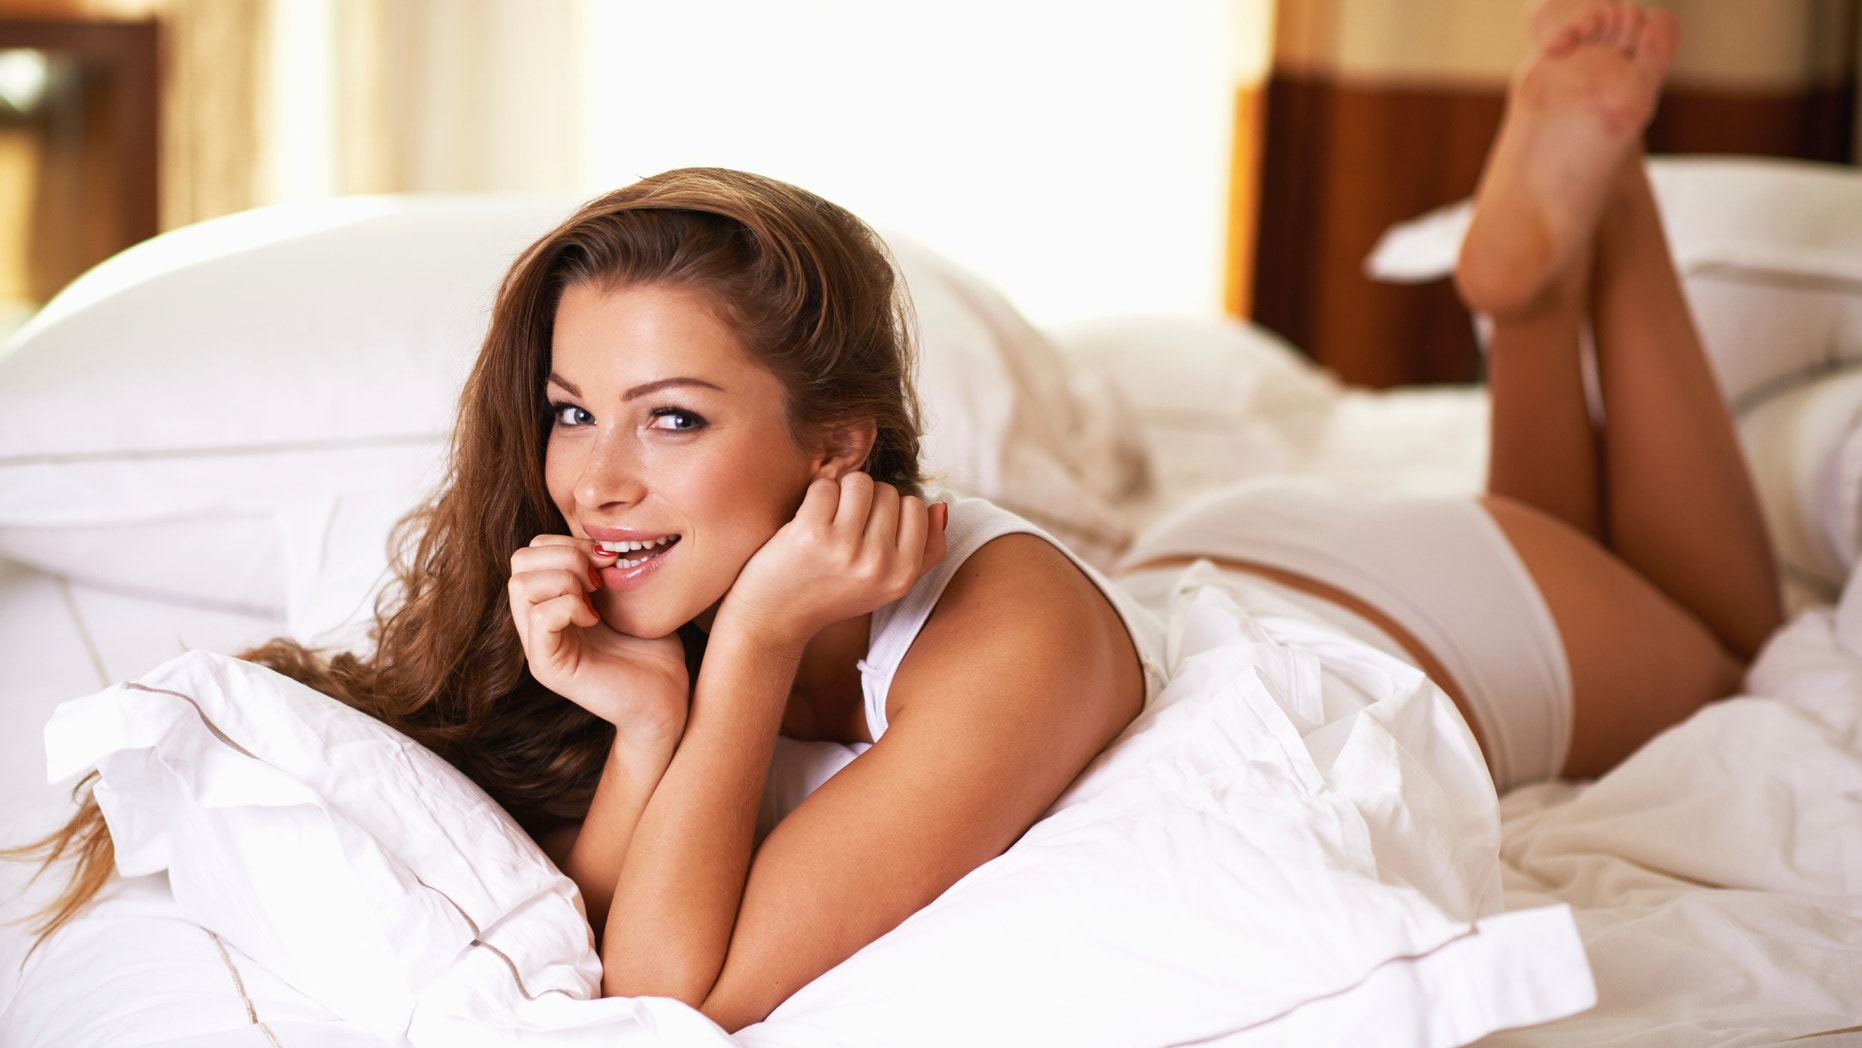 Shot of a gorgeous young woman in pajamas lying on a bed